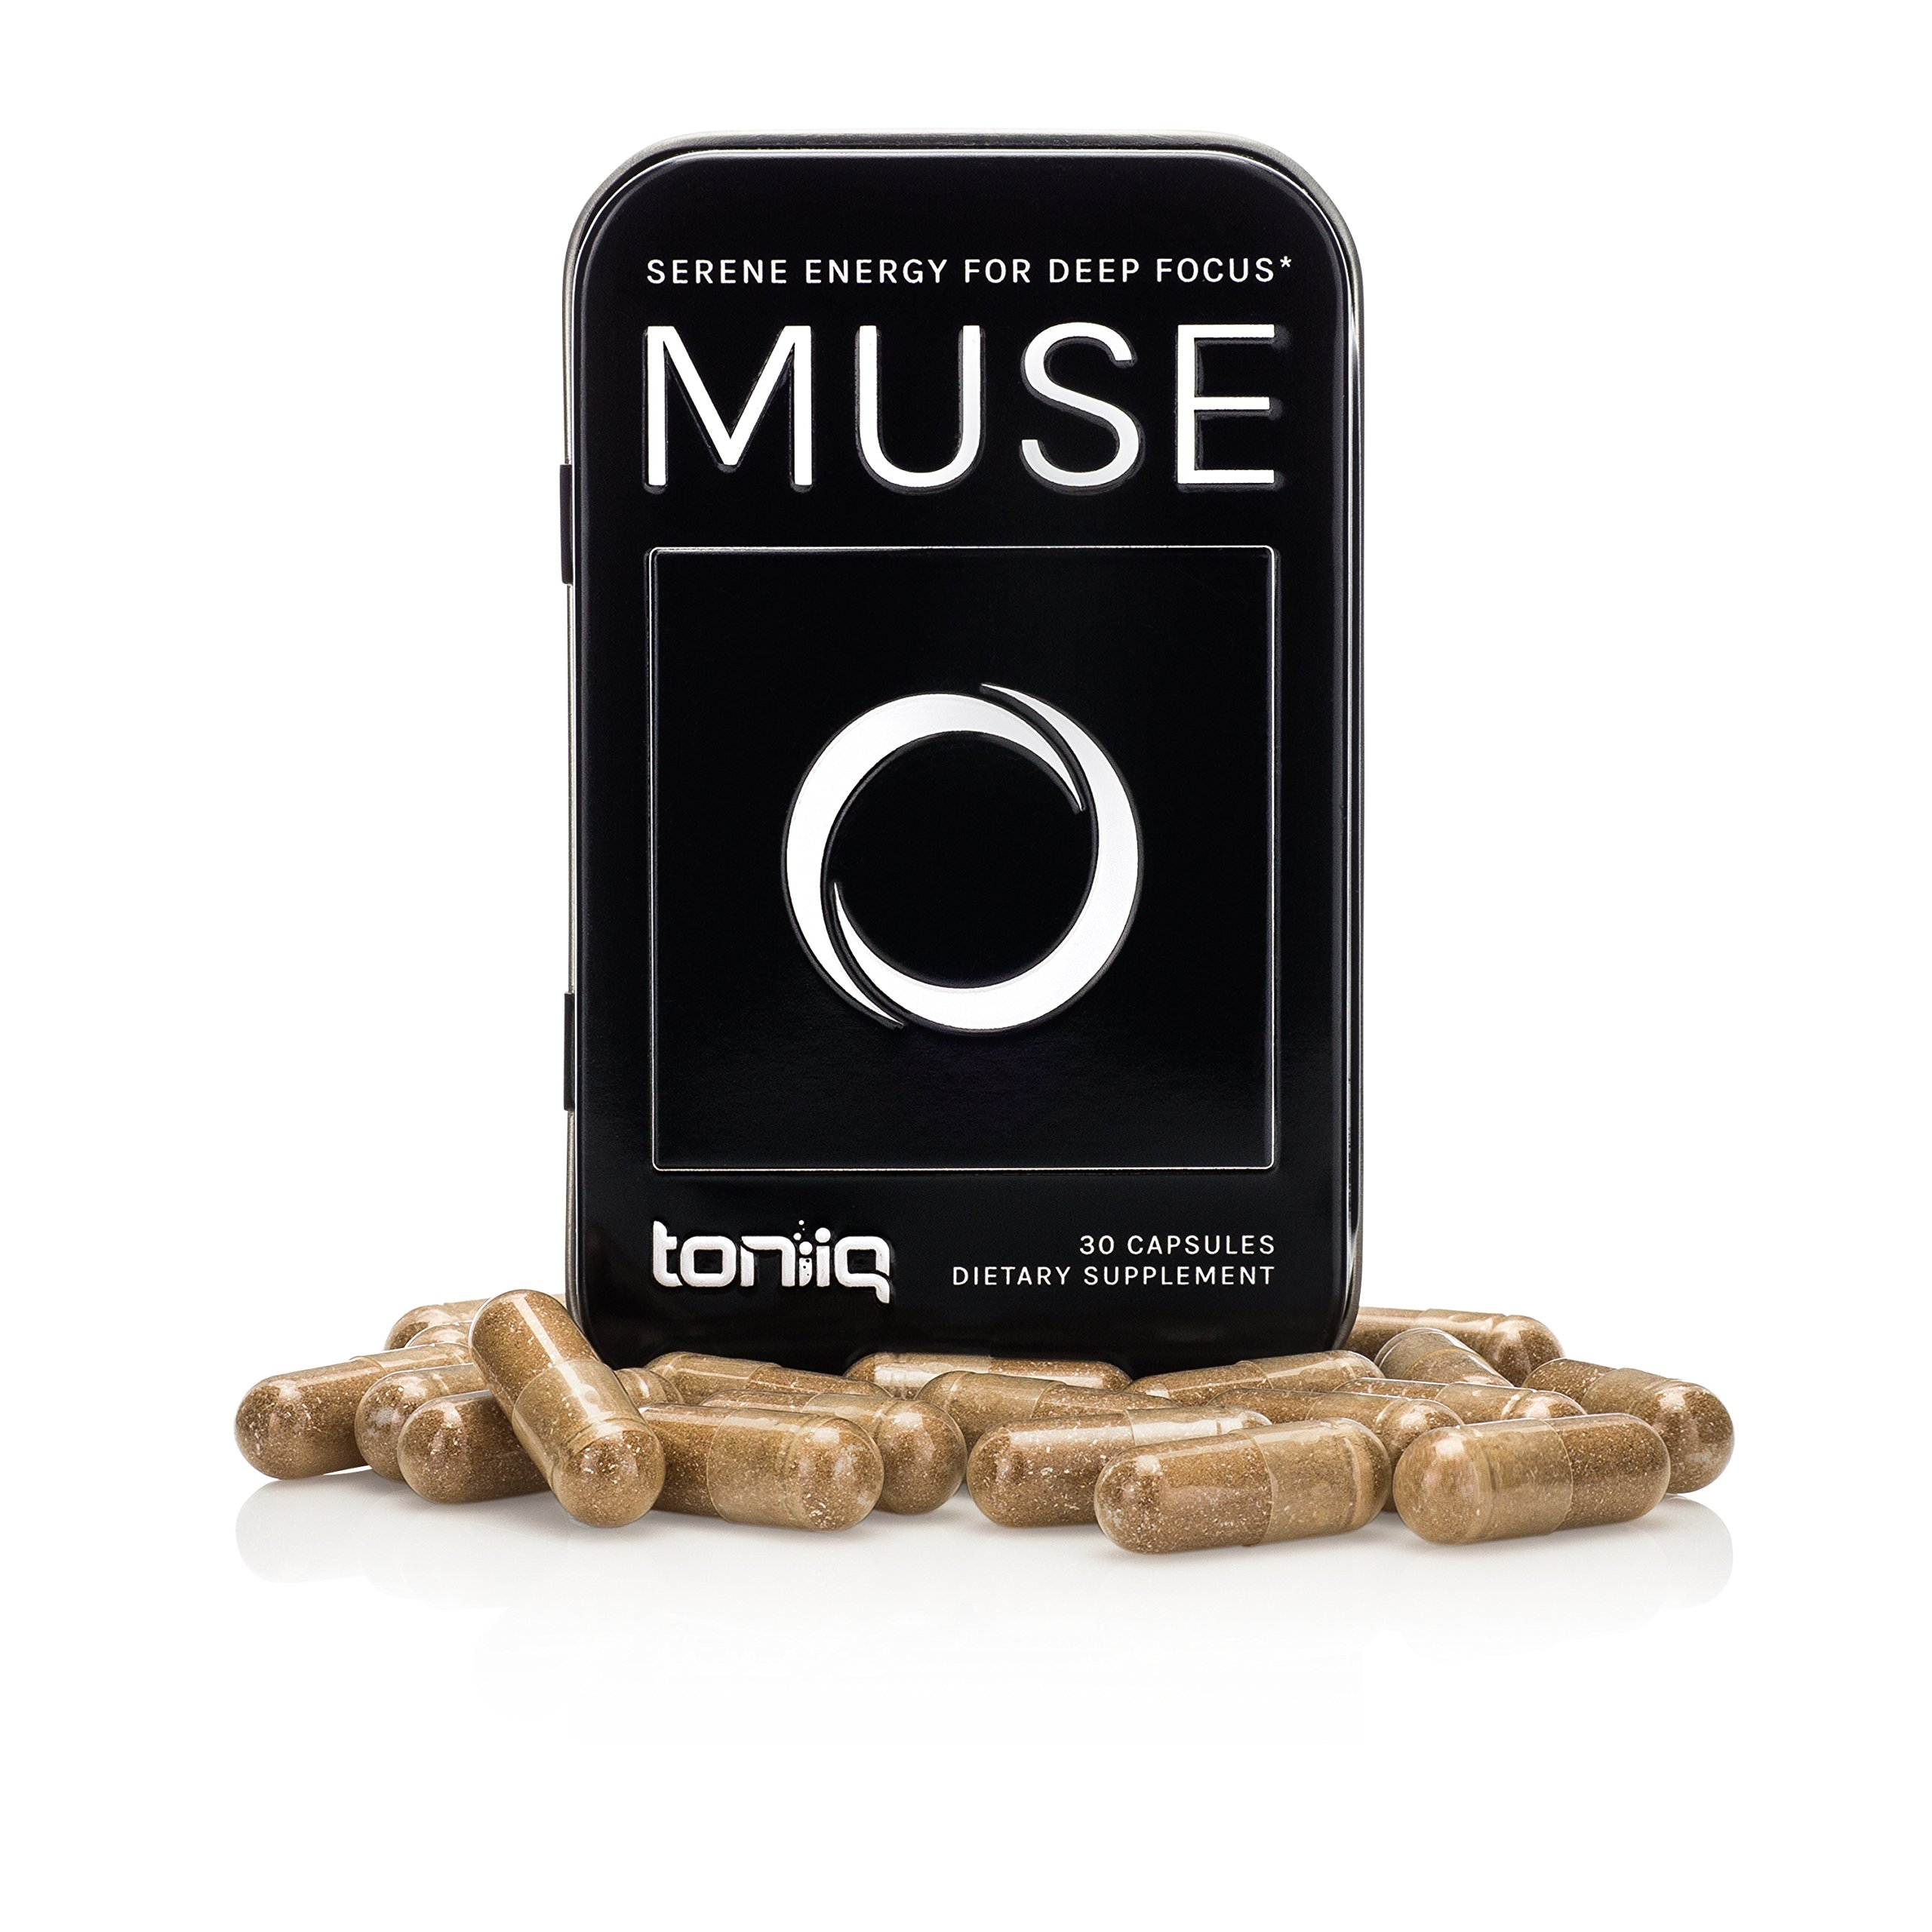 Muse by Toniiq | Superior Focus & Energy Support Brain Booster Supplement Pills | Nootropic with Yerba Mate Caffeine, Ashwagandha, Rhodiola, Vitamin B12, Patented Citicoline | 30 Veggie Capsules